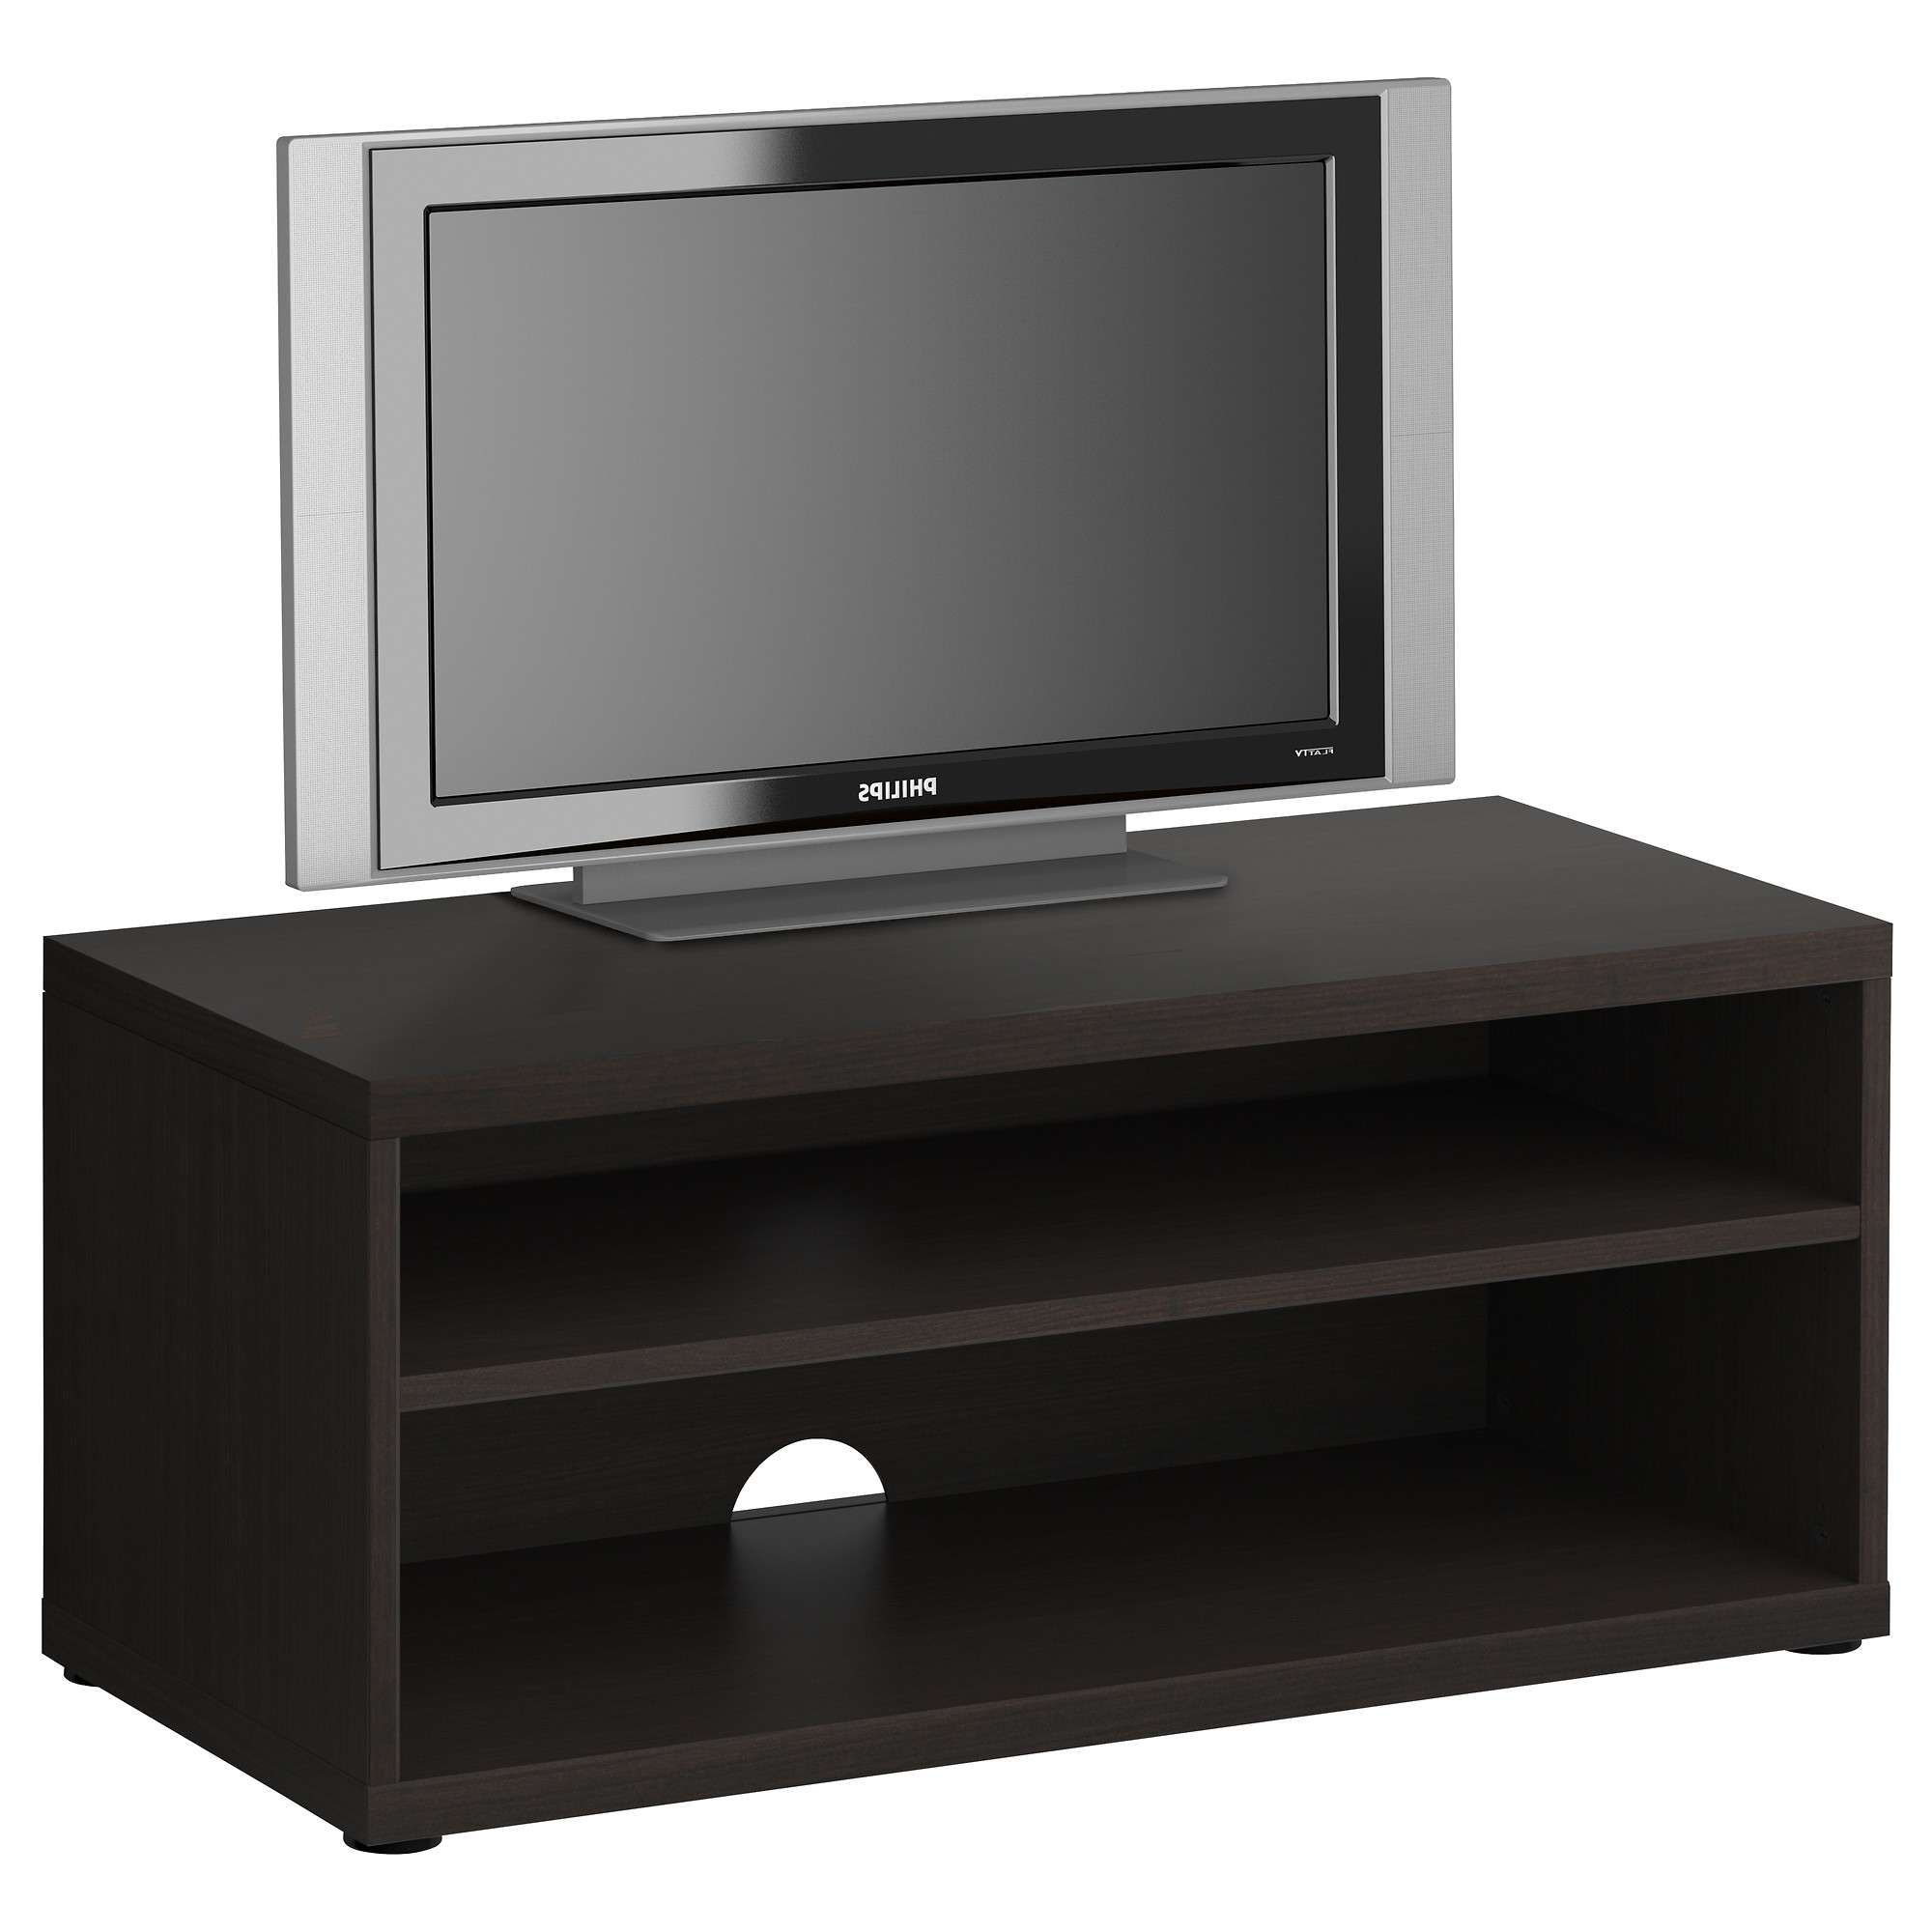 Mosjö Tv Bench Black Brown 90X40X38 Cm – Ikea Intended For Bench Tv Stands (View 12 of 15)